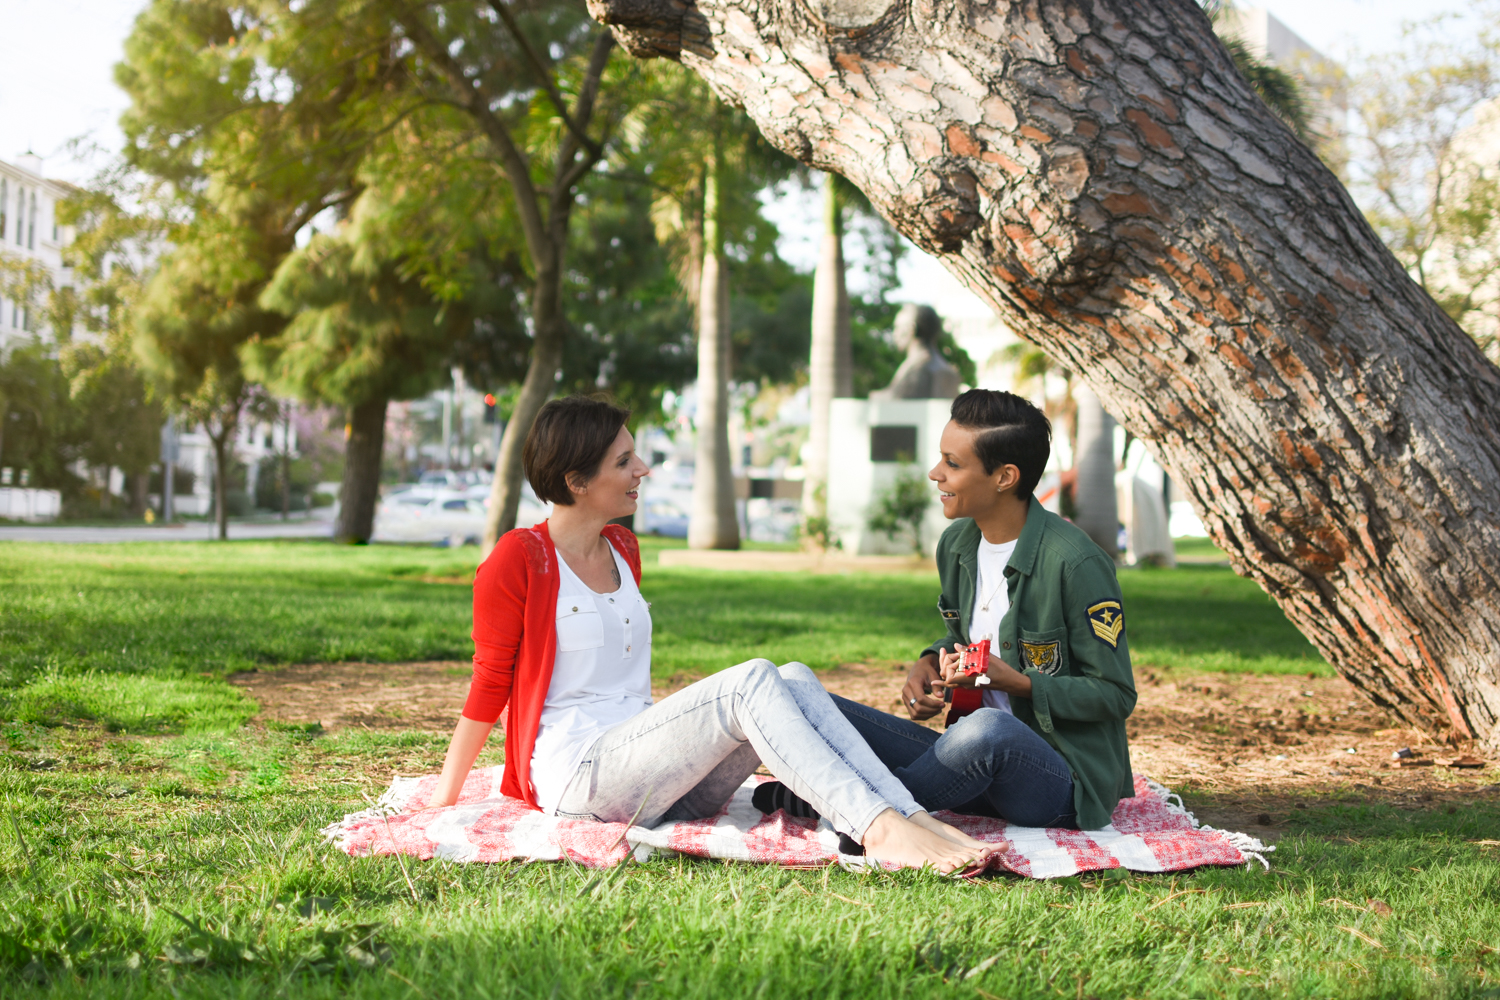 Woman Serenades Her Female Fiancé with Ukulele at Picnic